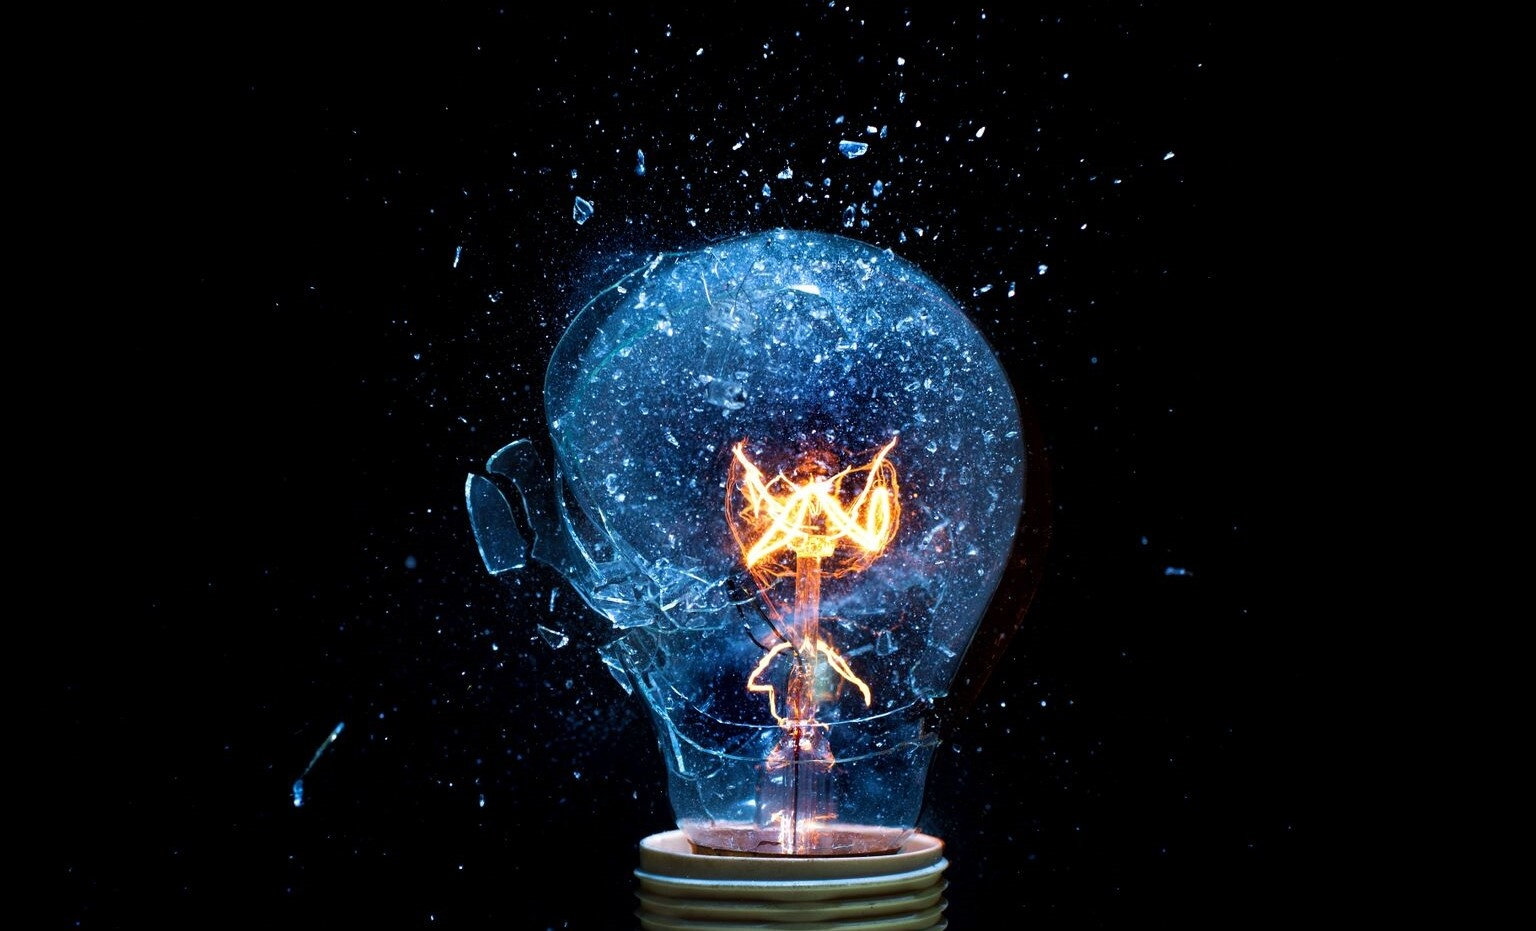 Light bulb shattering with glowing filament